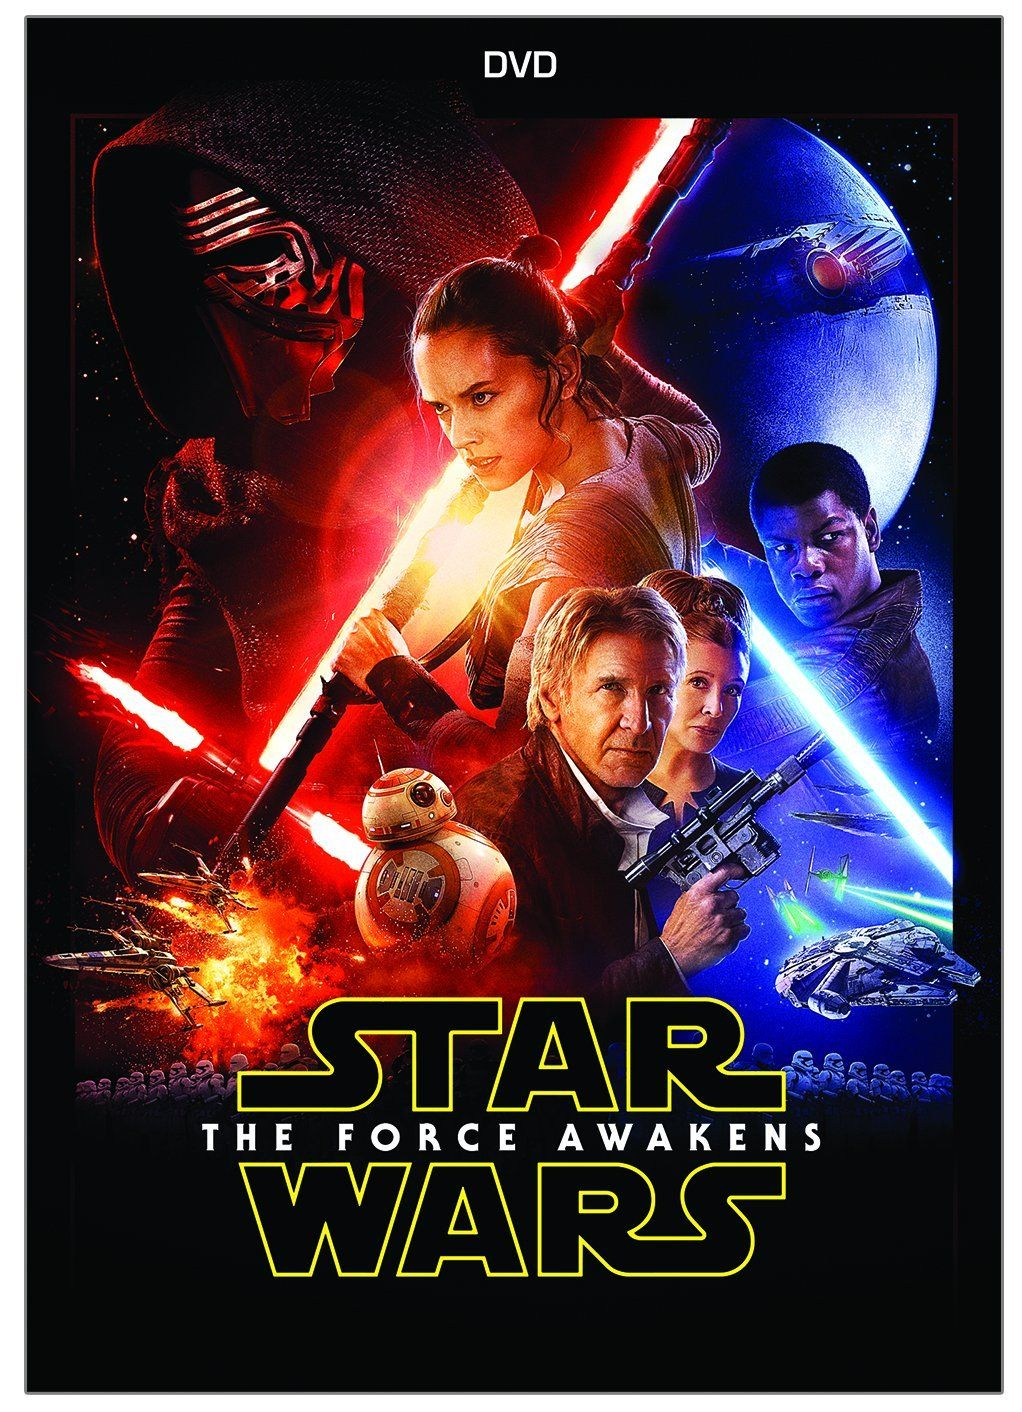 Star Wars Episode VII The Force Awakens DVD Cover | DVD and Blu-Ray ...